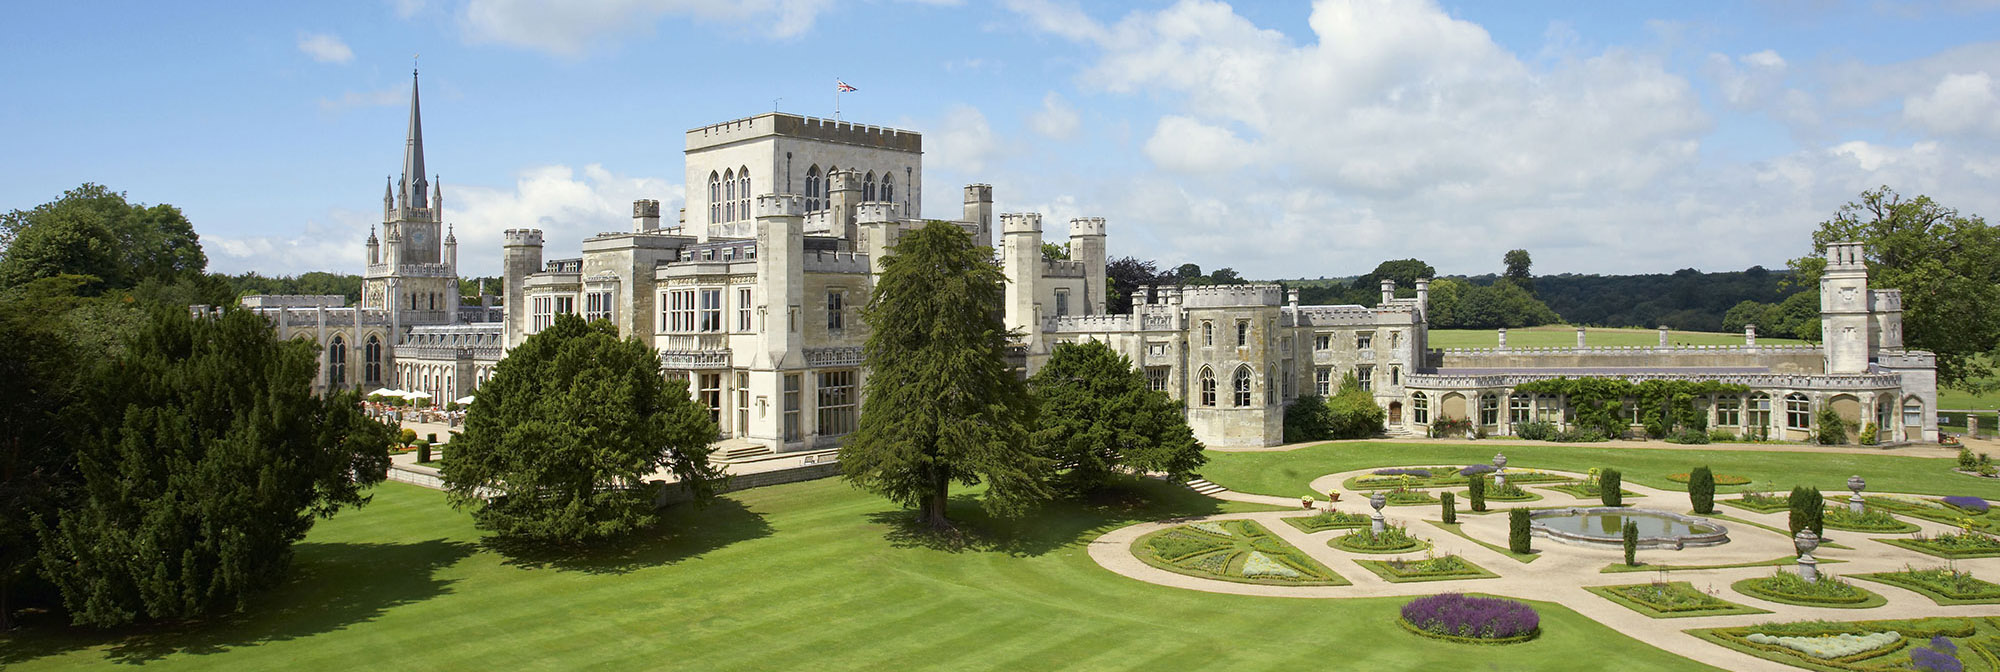 Ashridge Executive Education - exterior